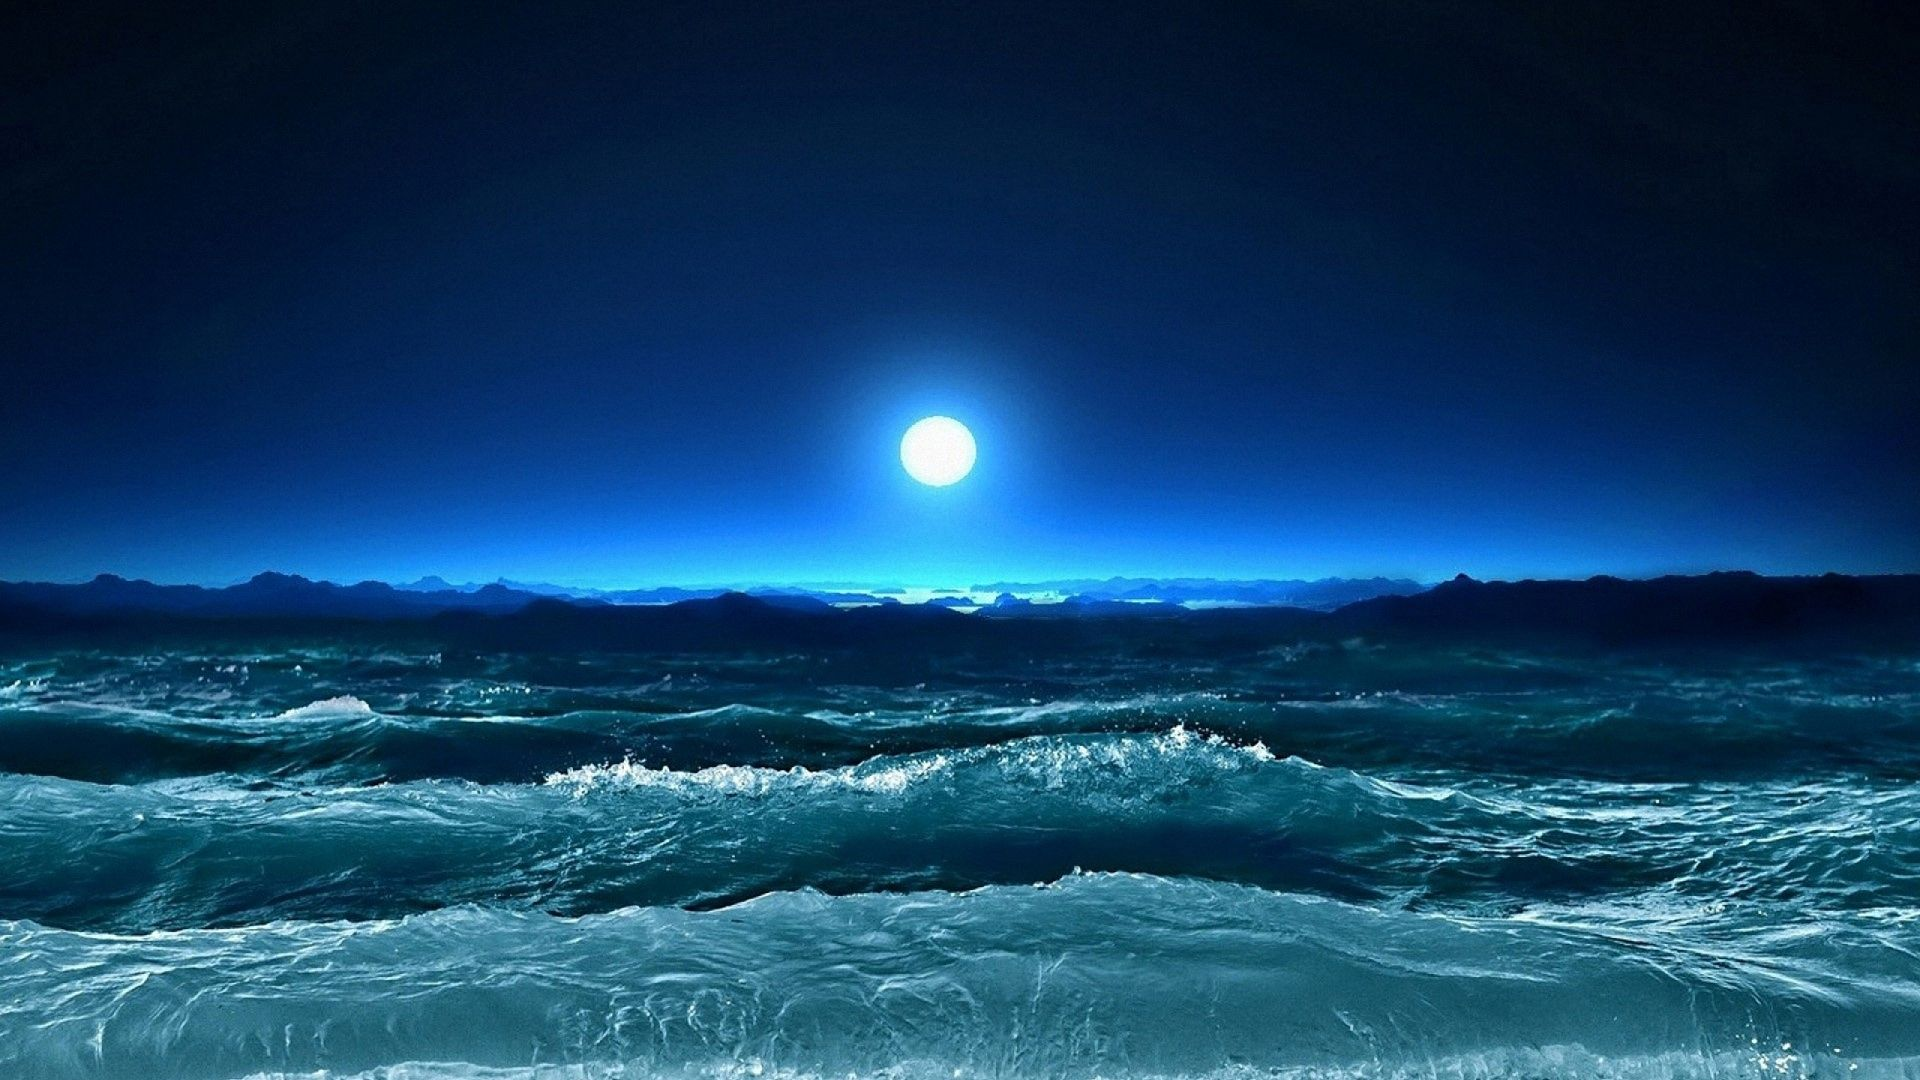 Ocean Moon Wallpapers Top Free Ocean Moon Backgrounds